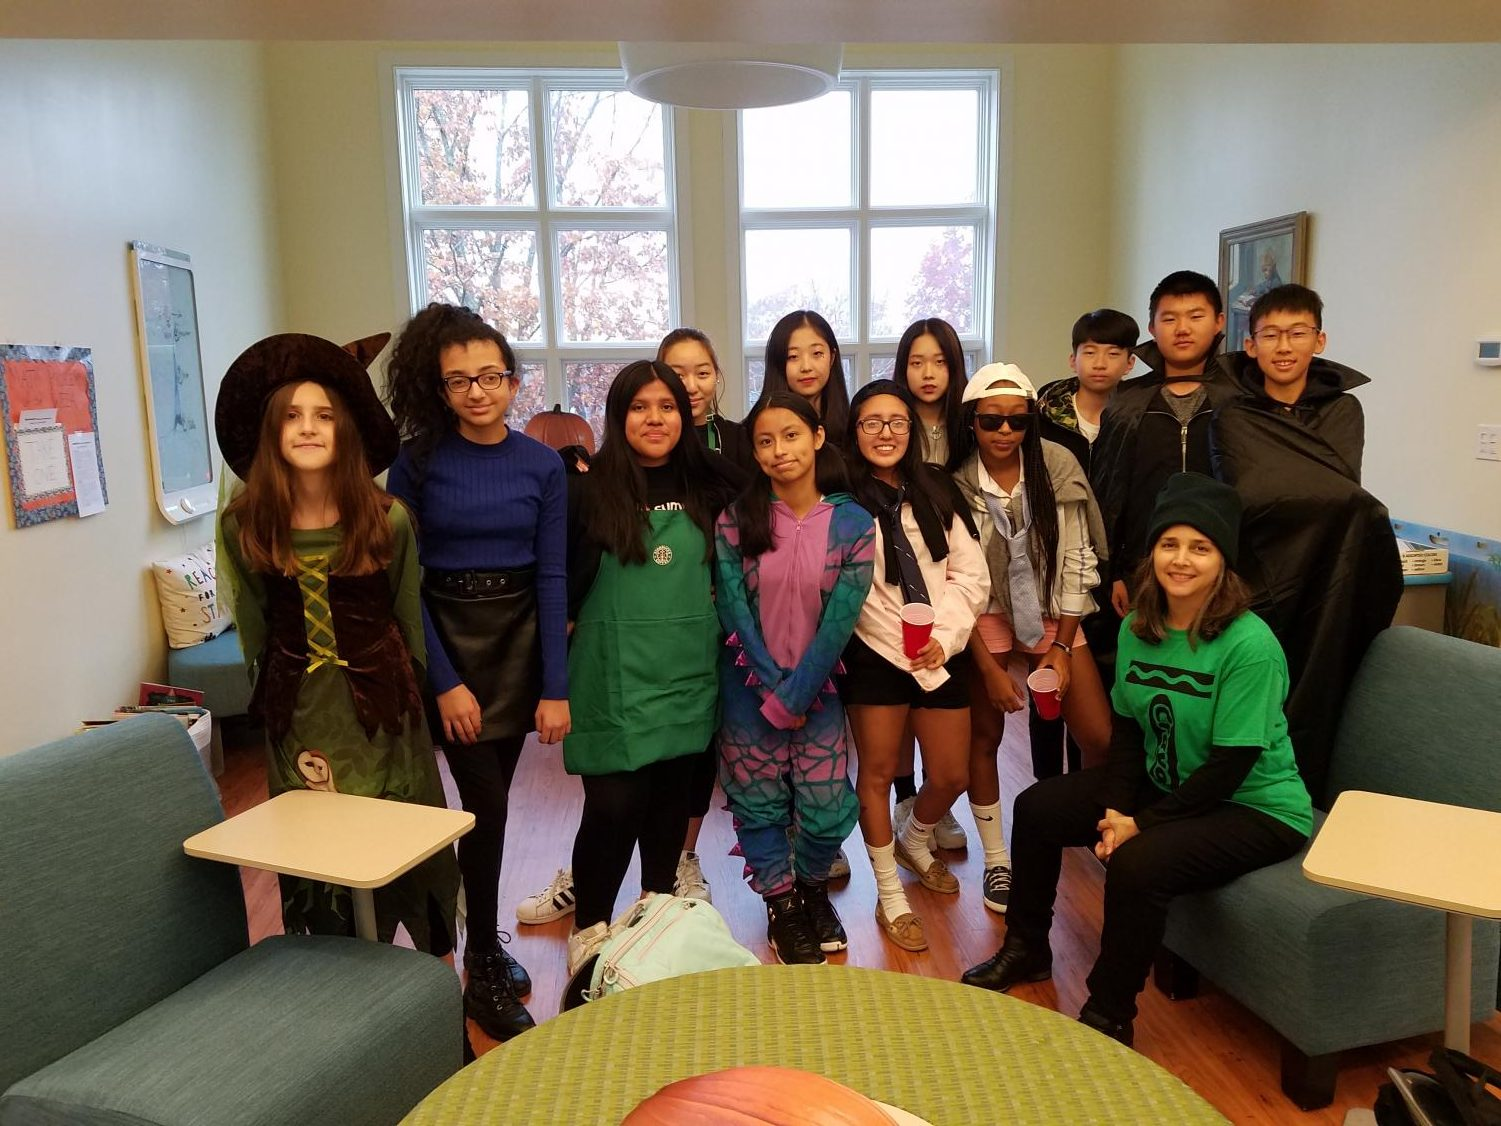 Mrs. Sangiolo (sitting, far right) and members of Rectory's Community Service Elective in their Halloween costumes.